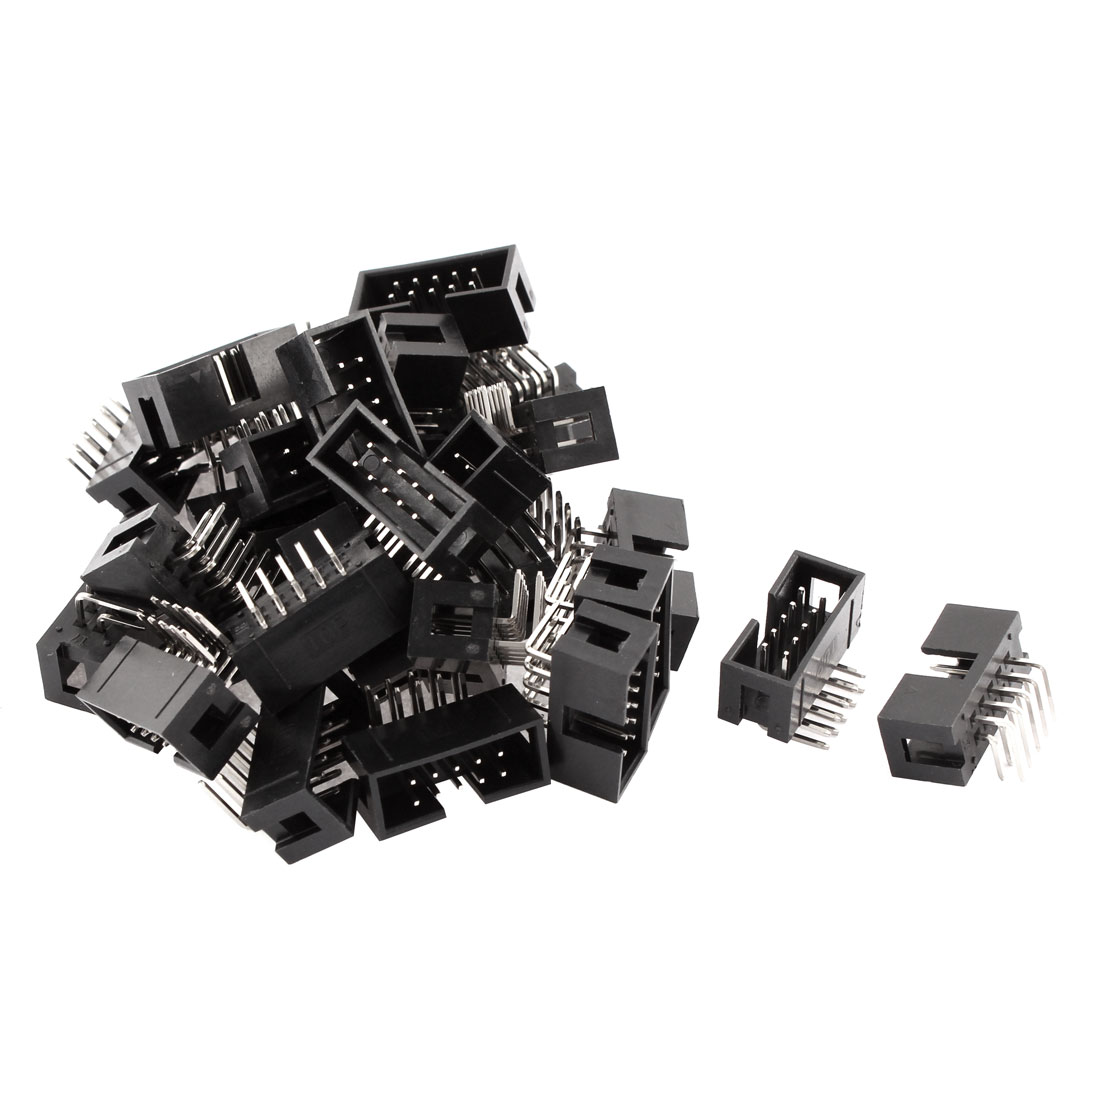 28pcs 2x5 10-Pin Right Angle Box Header Connector IDC Male Sockets 2.54mm